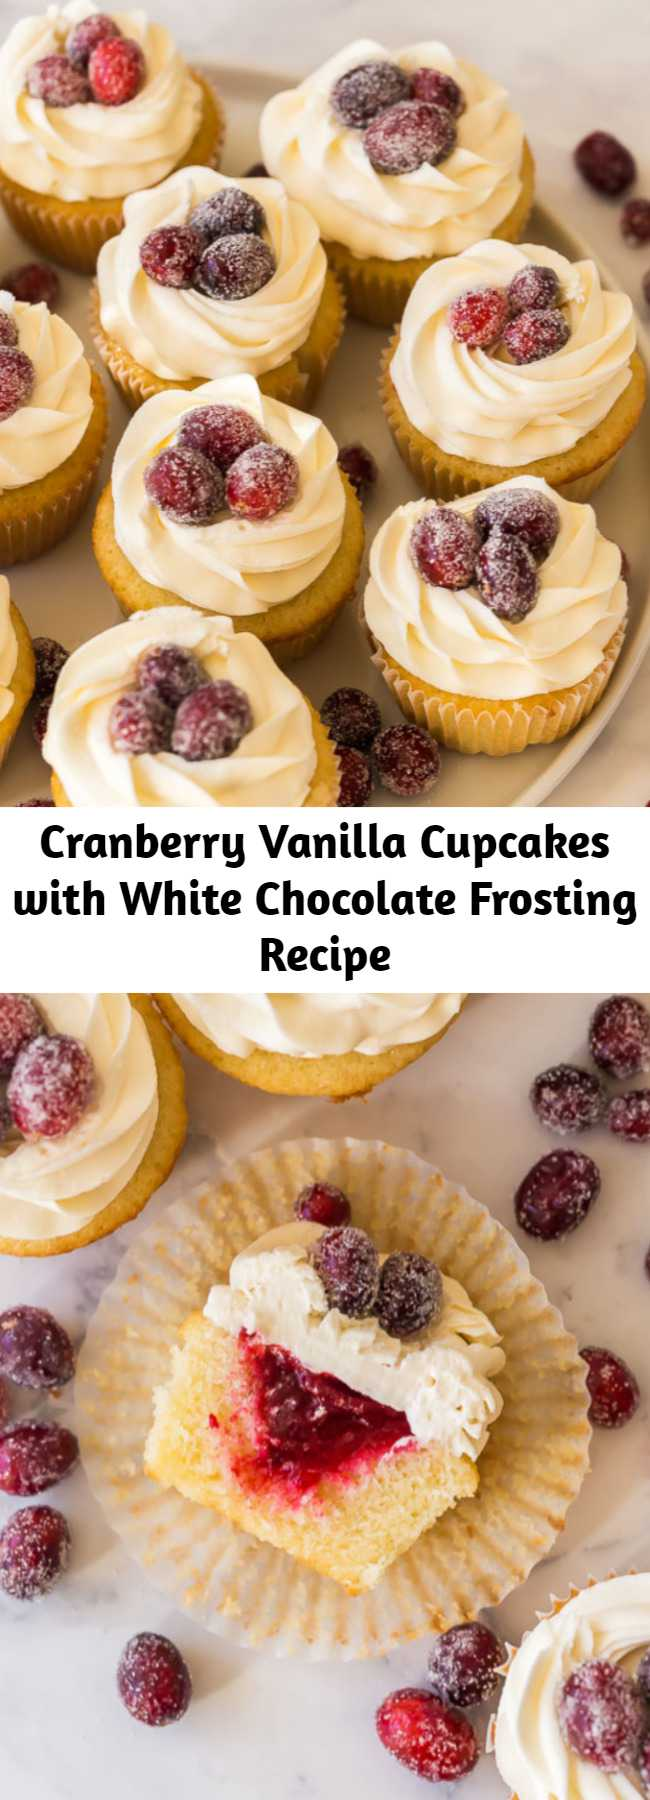 Cranberry Vanilla Cupcakes with White Chocolate Frosting Recipe - Vanilla cupcakes, filled with homemade cranberry filling and topped with a swirl of white chocolate frosting — the perfect festive holiday treat!